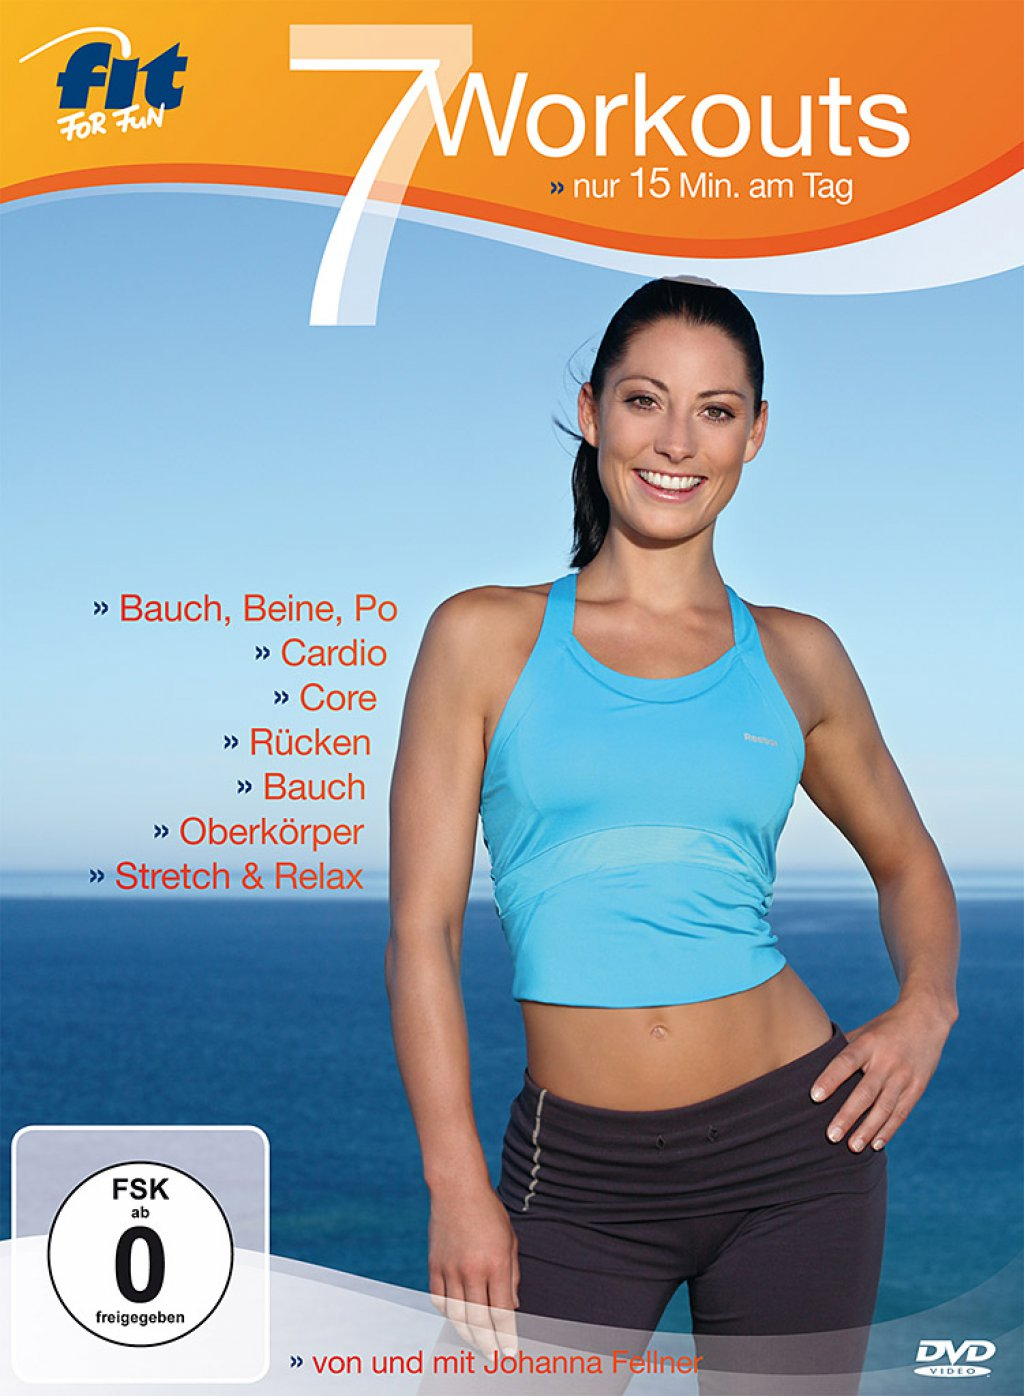 Fit for Fun - 7 Workouts: nur 15 Minuten am Tag (DVD)